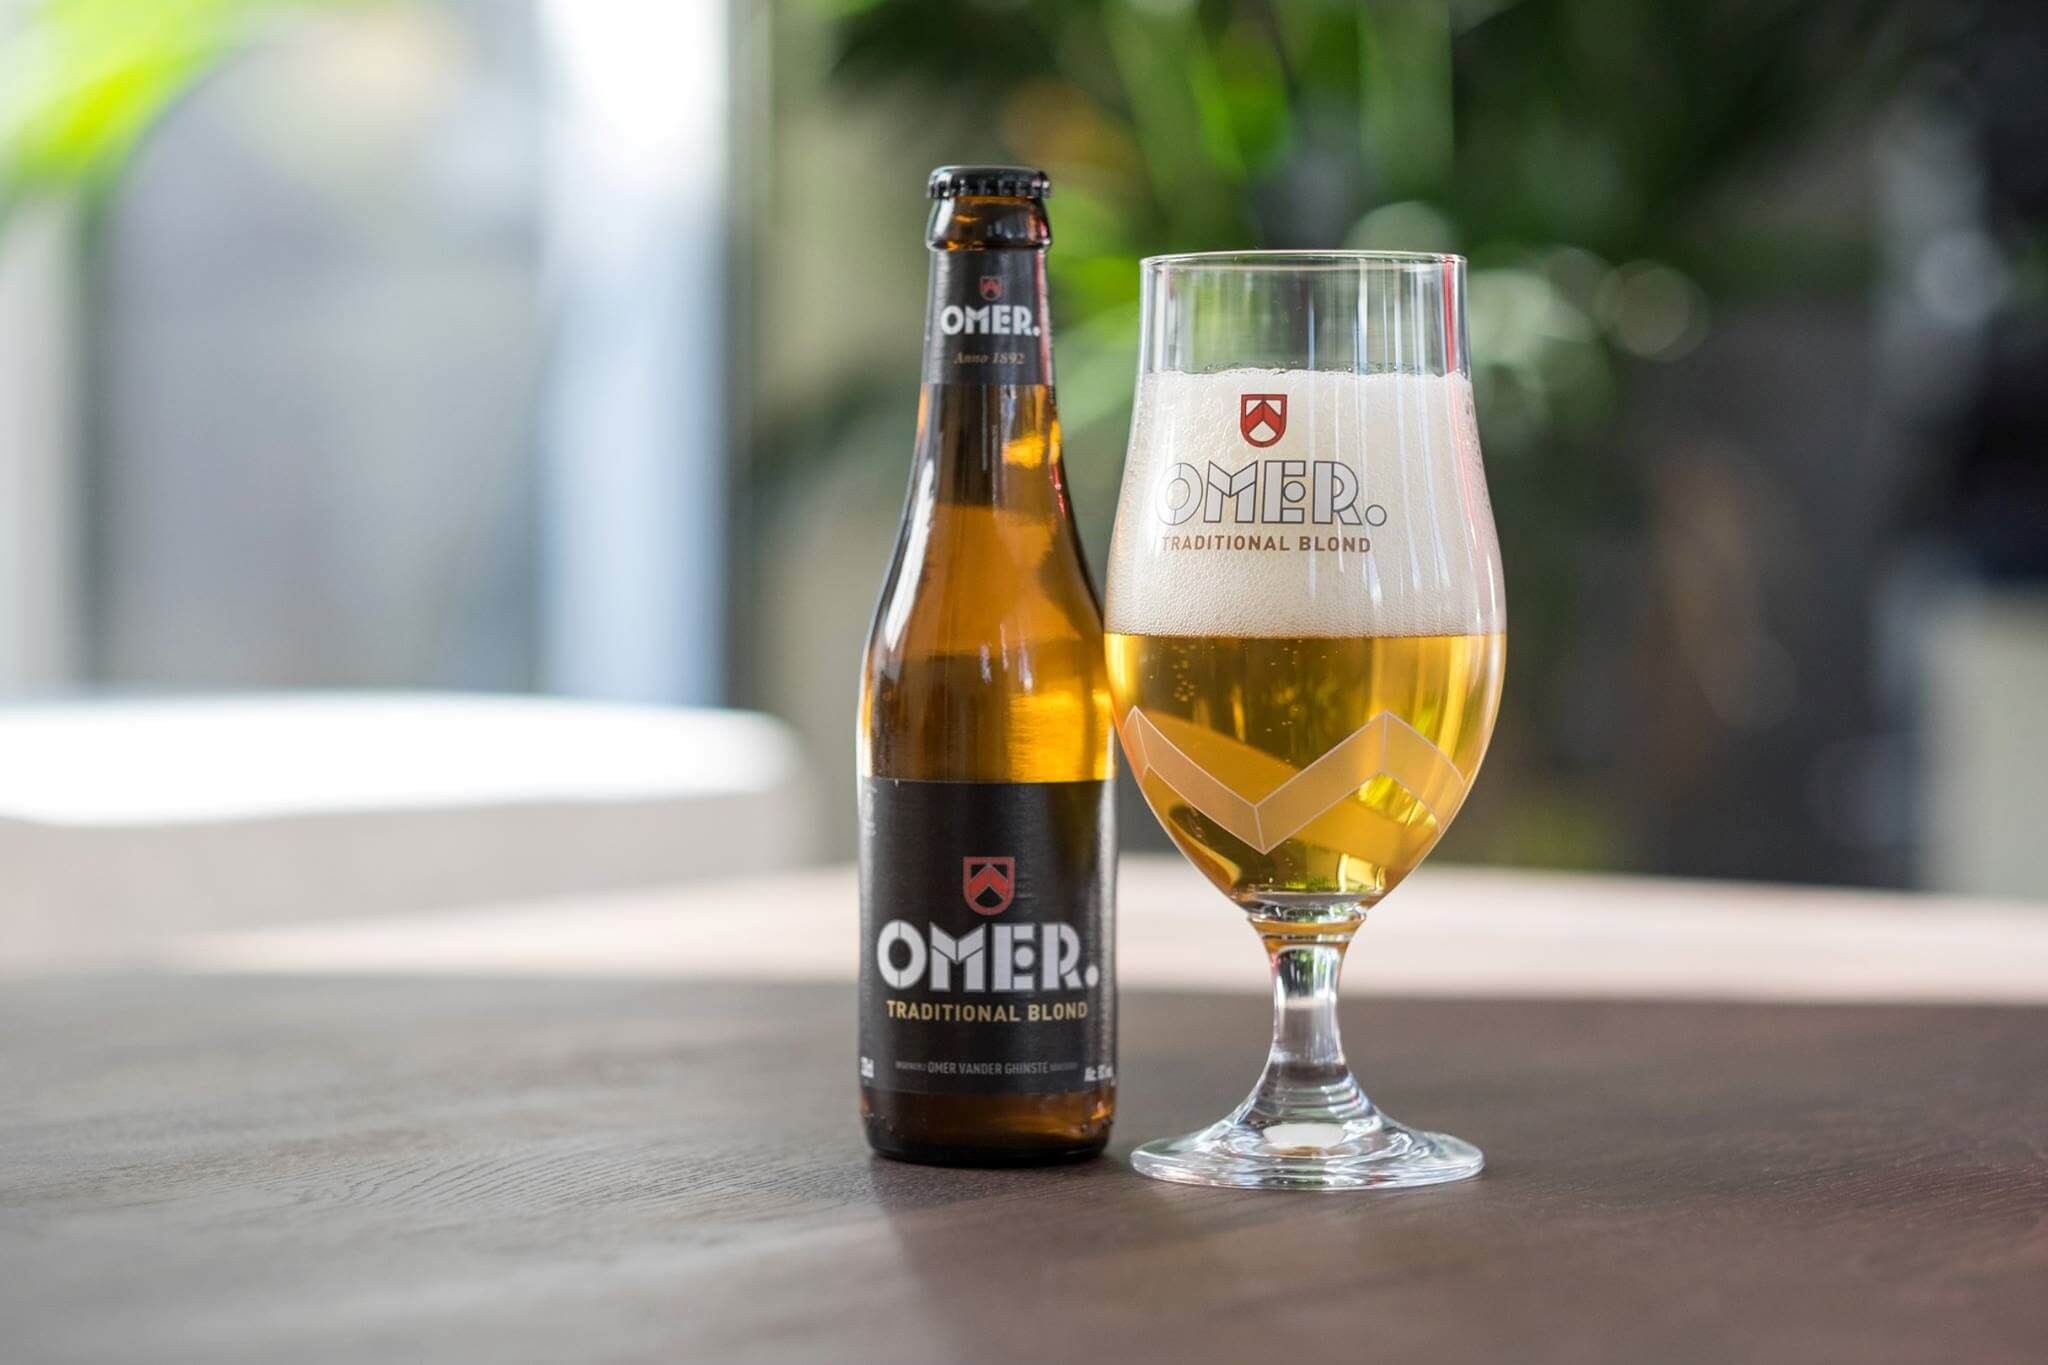 Omer pils traditioneel blond